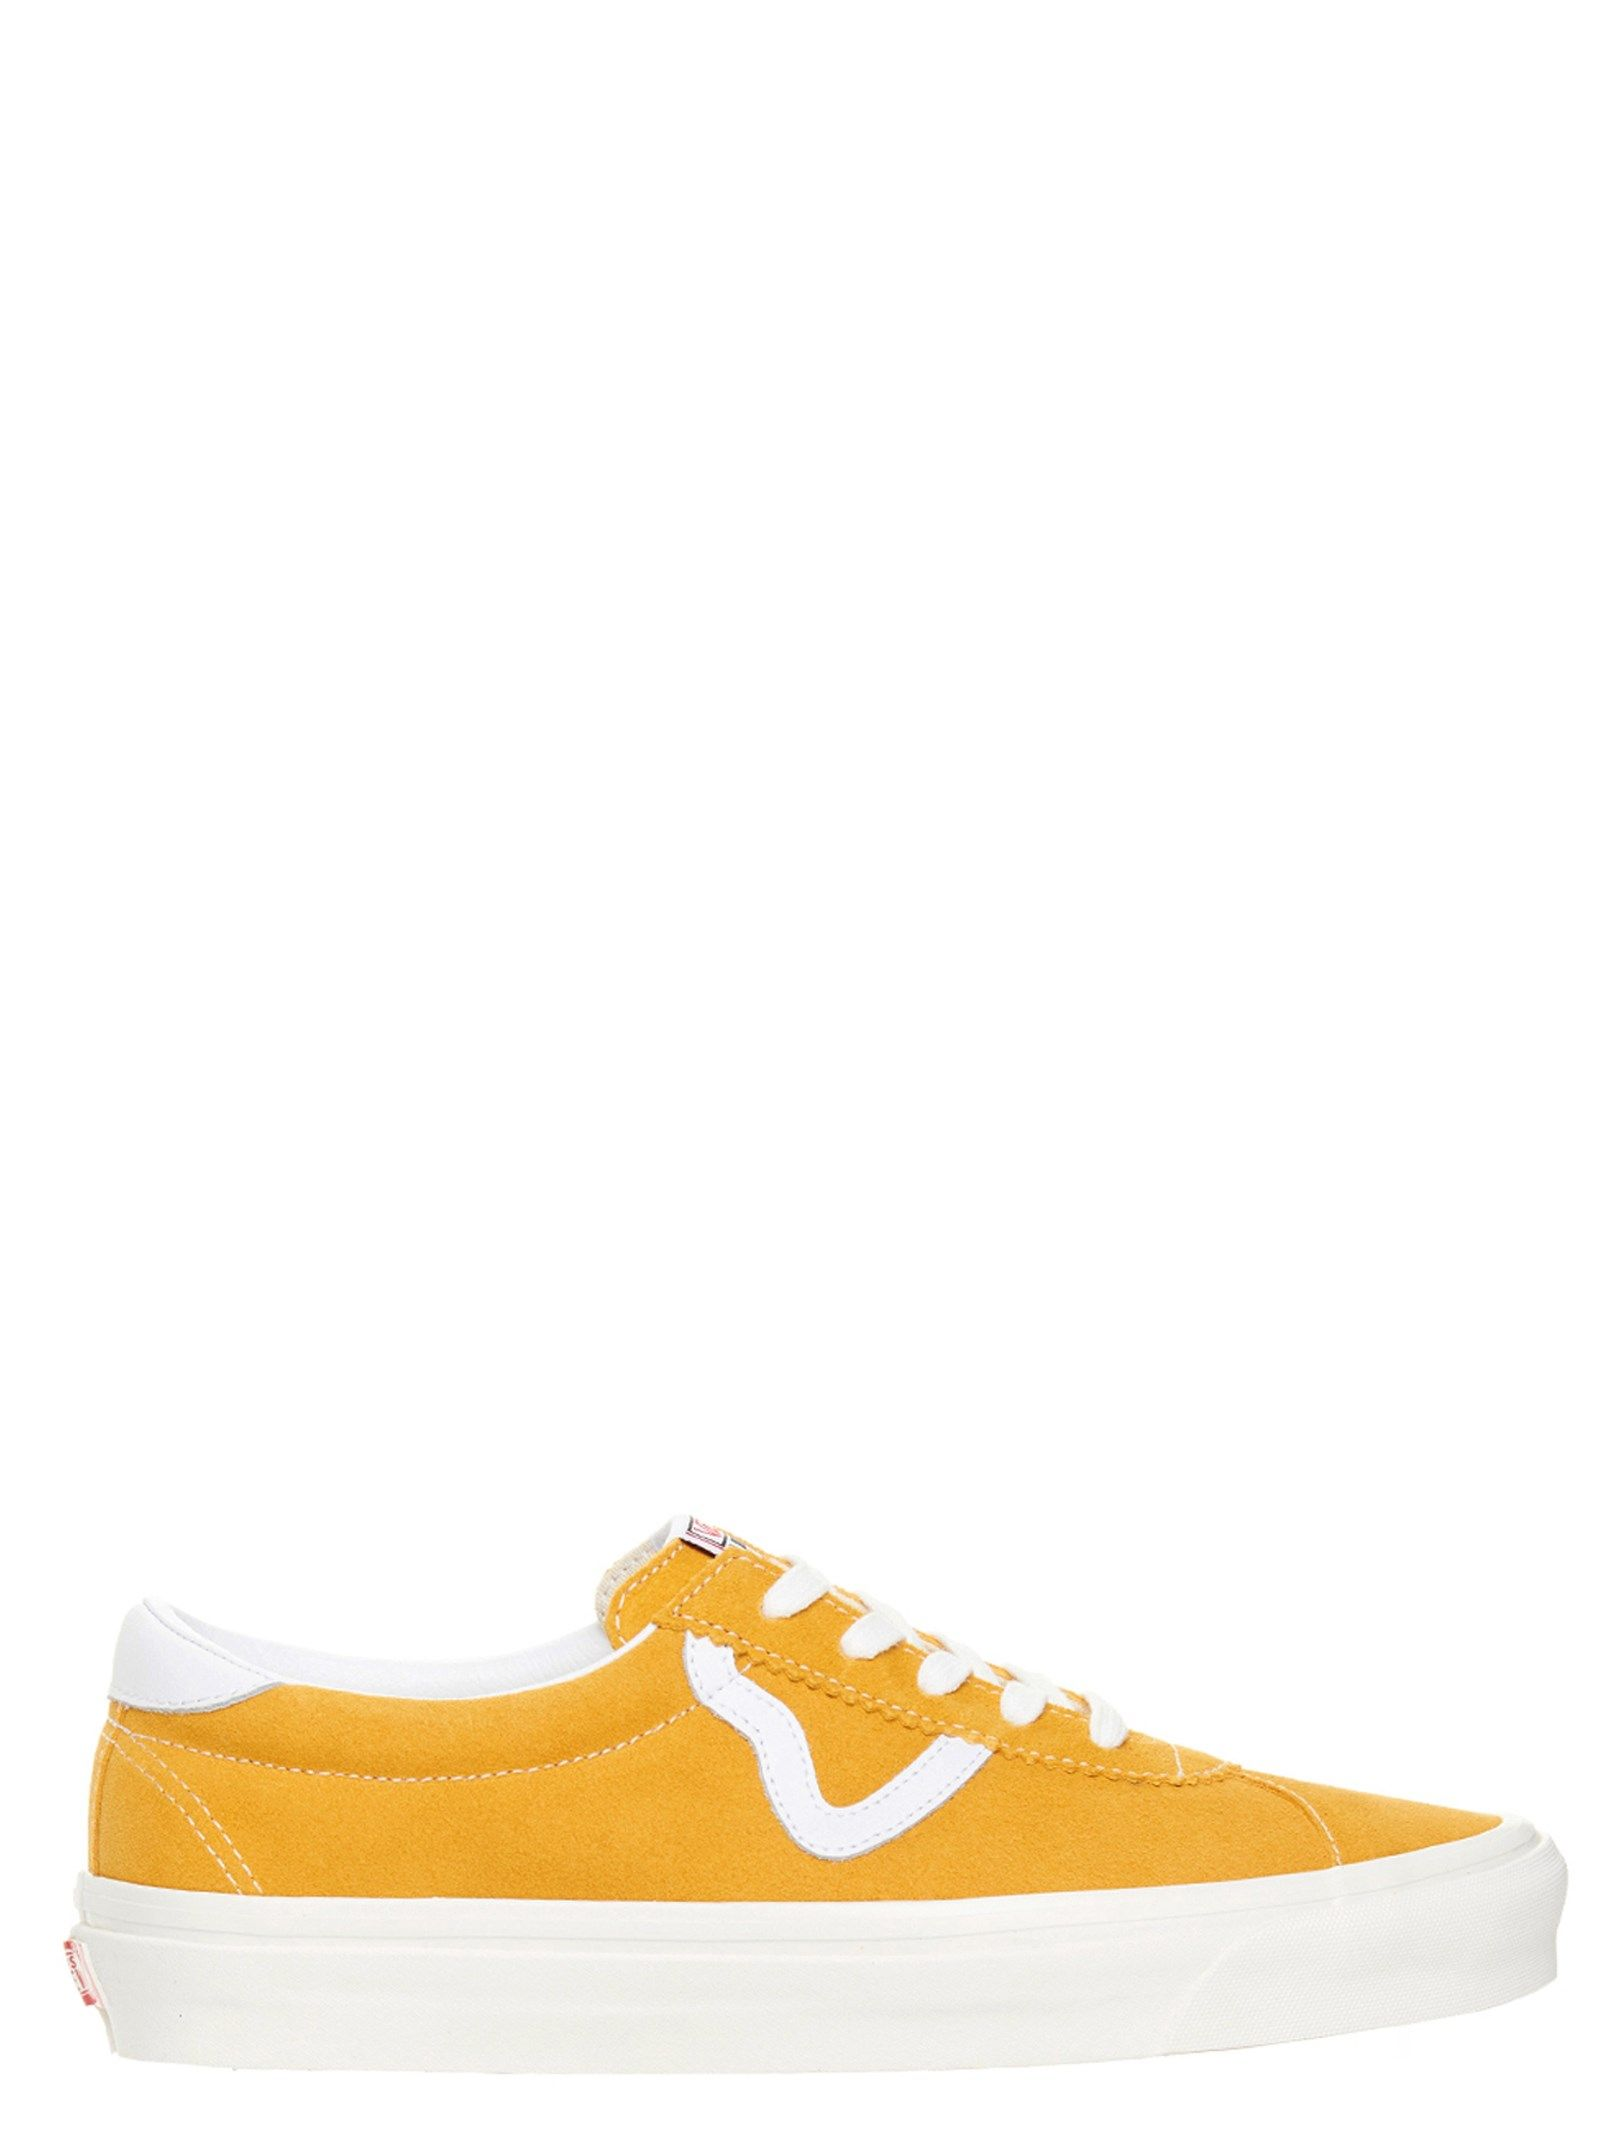 Vans Leathers VANS MEN'S VN0A3WLQ4ZF1 YELLOW OTHER MATERIALS SNEAKERS